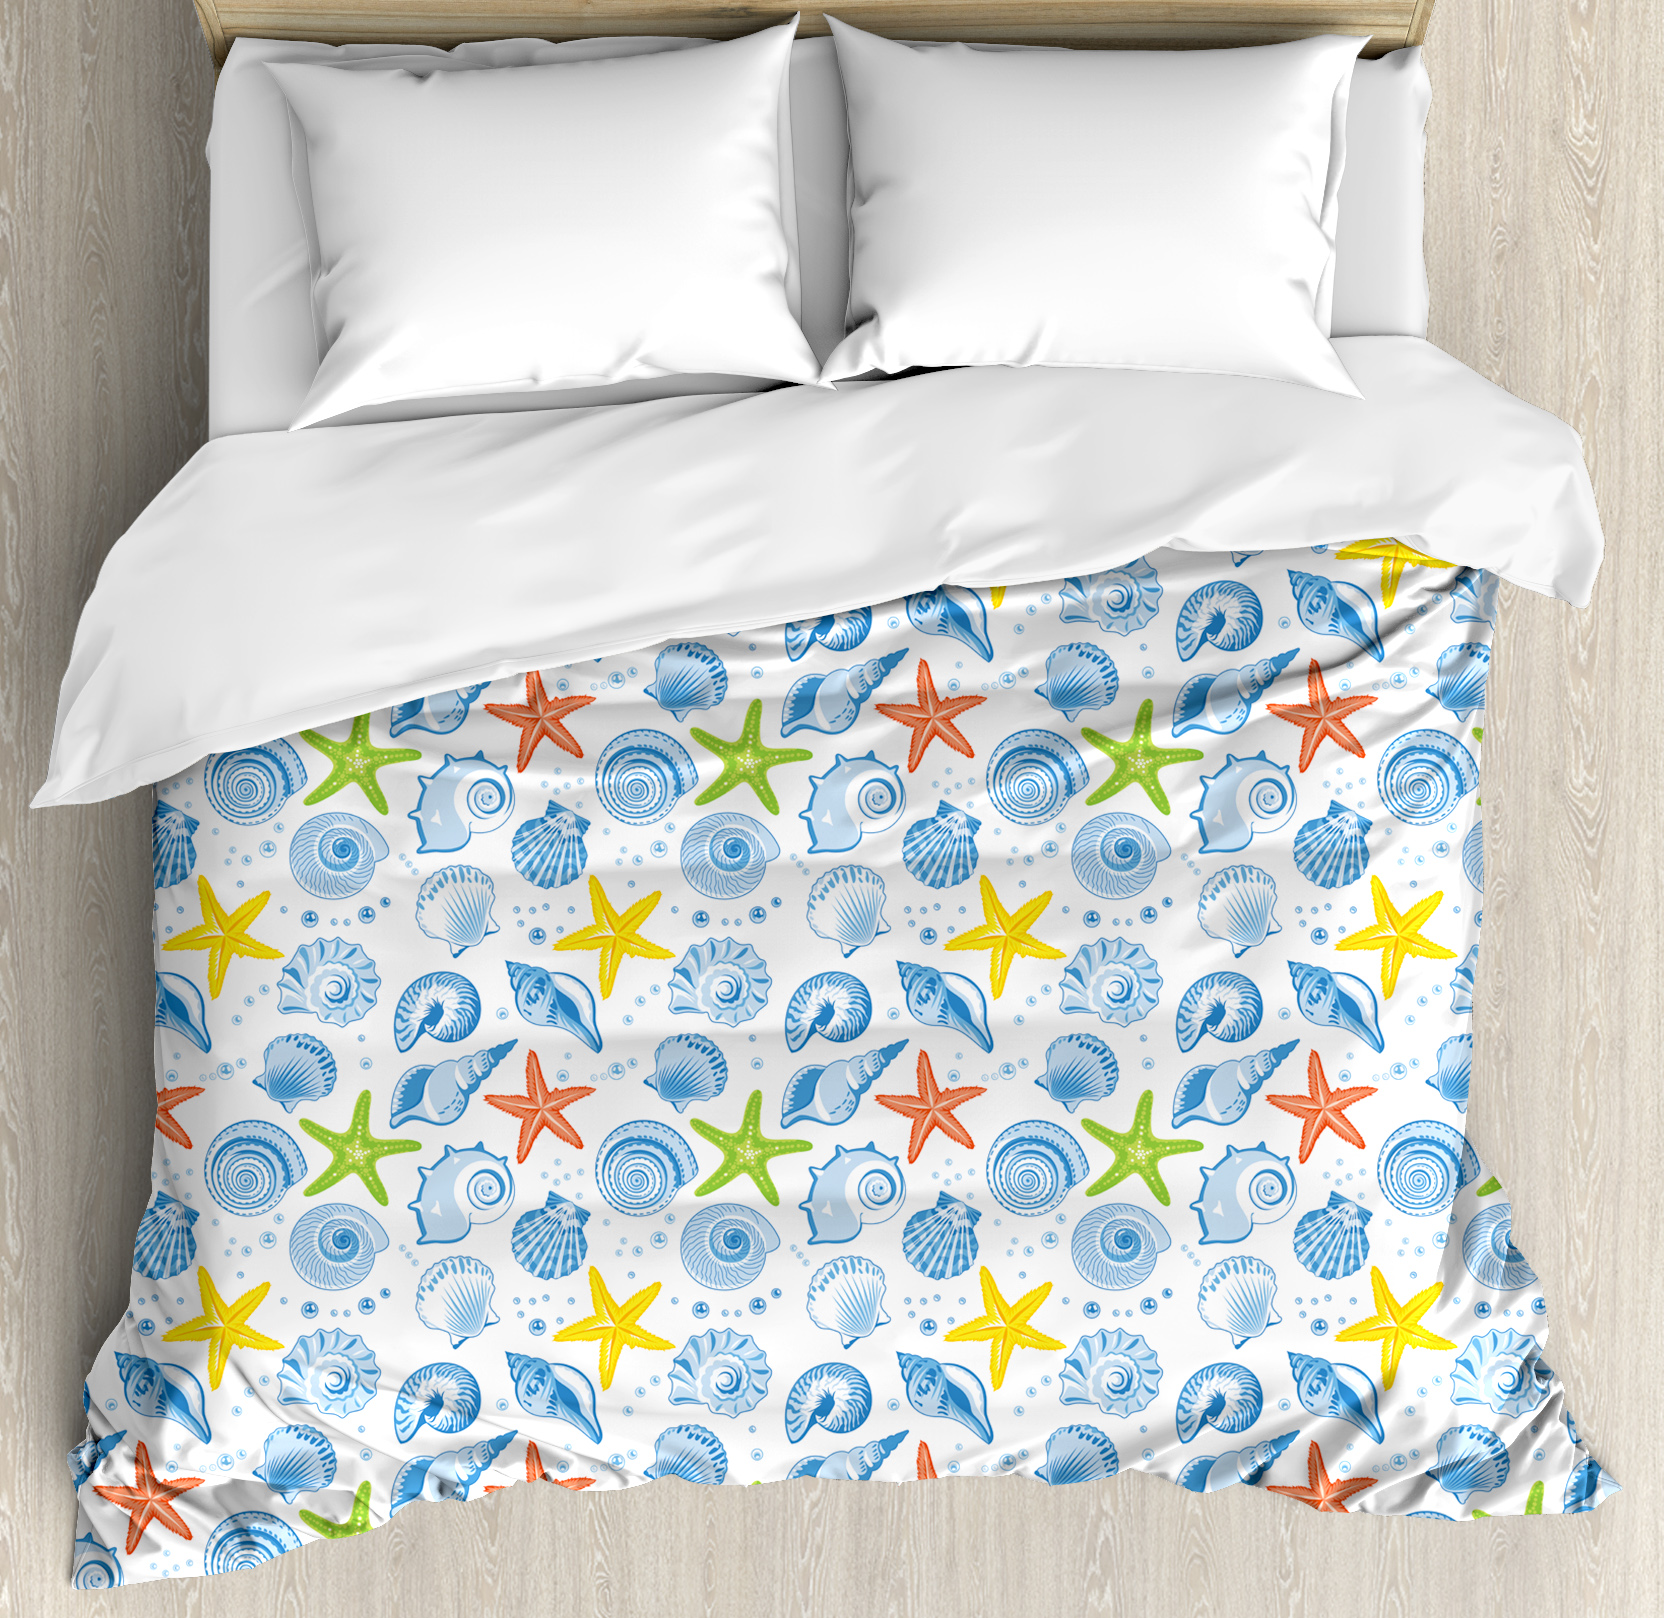 Nautical Duvet Cover Set, Marine Themed Starfish Mollusk Coral Reef Shells Oyster Underwater Design, Decorative Bedding Set with Pillow Shams, Blue and Yellow, by Ambesonne